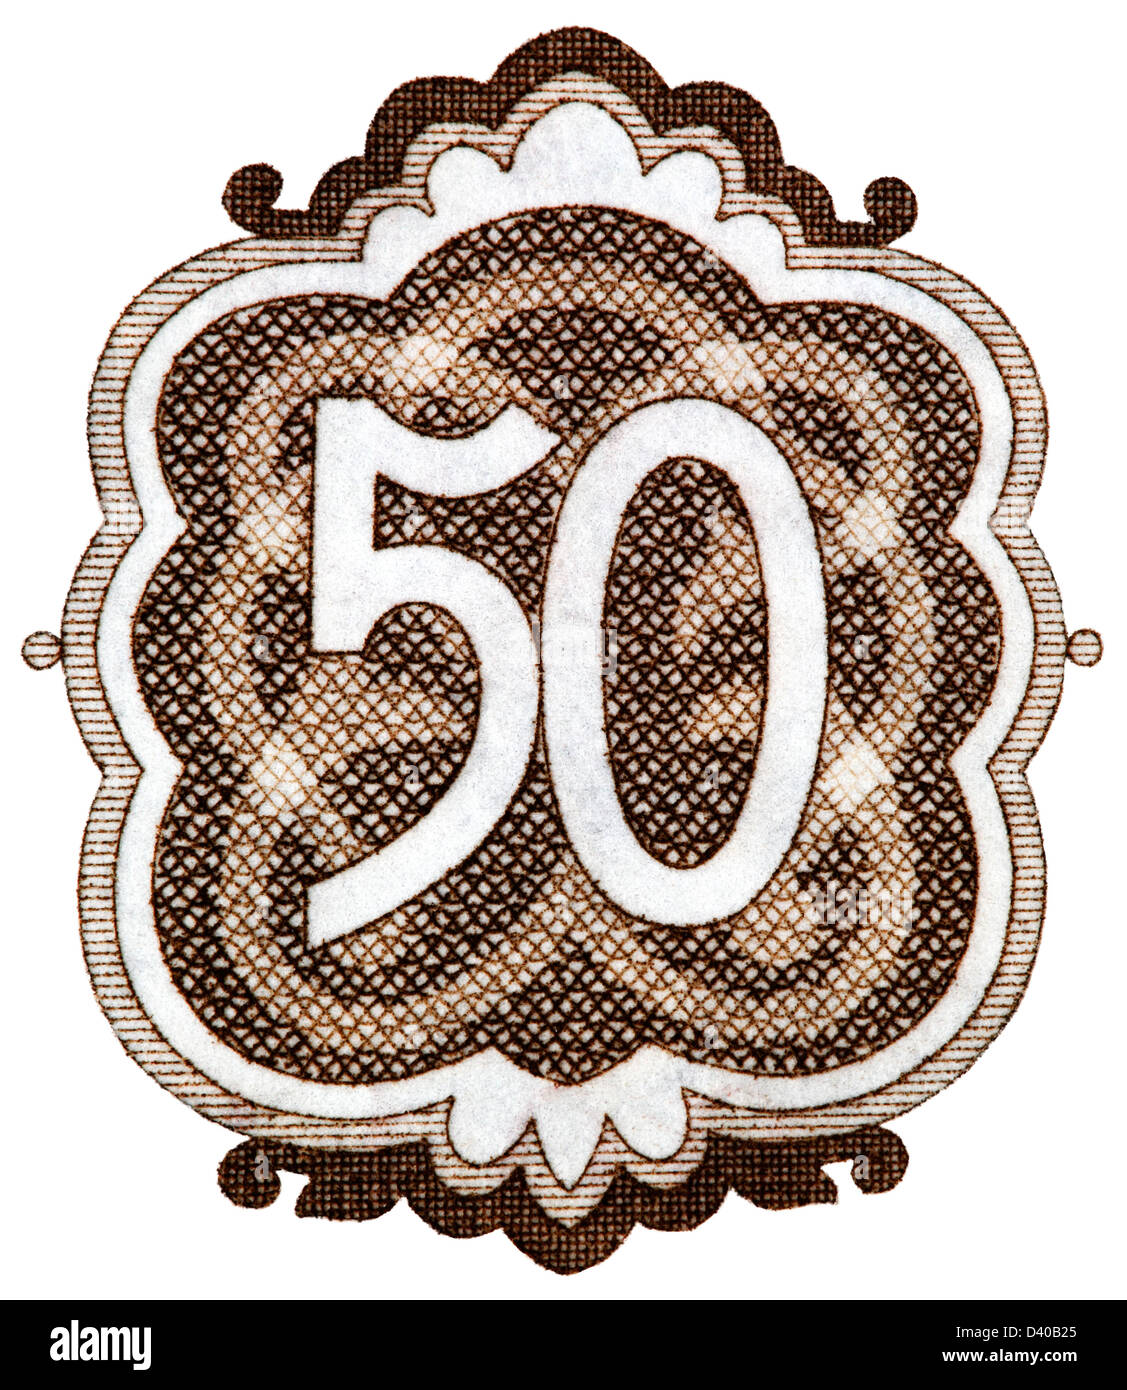 Number 50 from 50 Leva banknote, Bulgaria, 1951, on white background - Stock Image